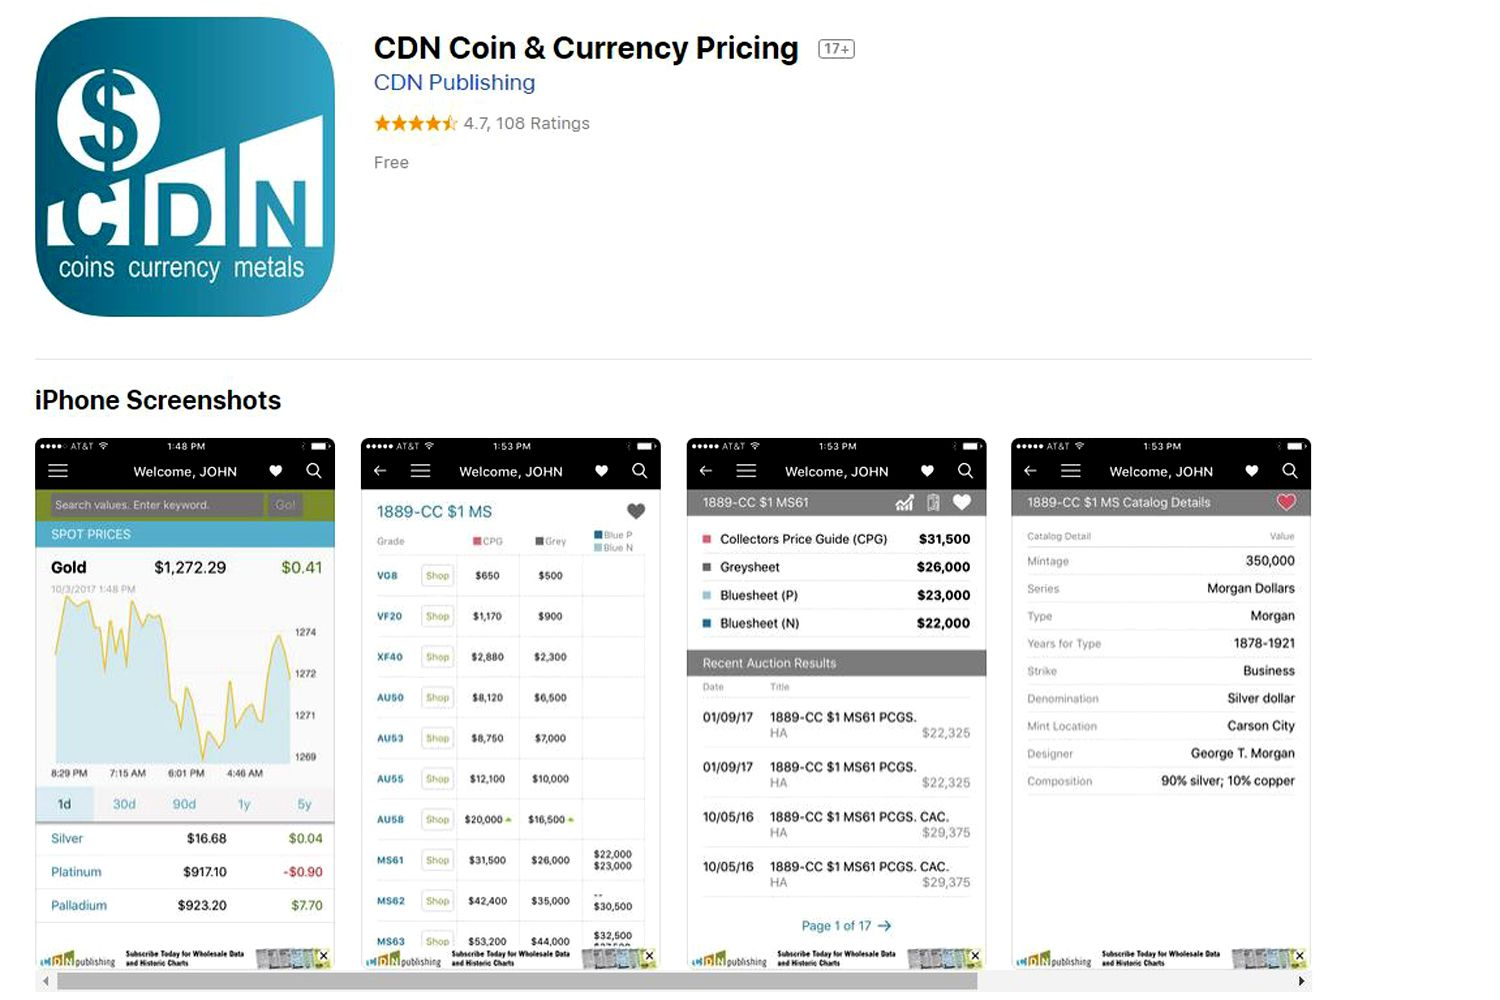 CDN coin and currency pricing